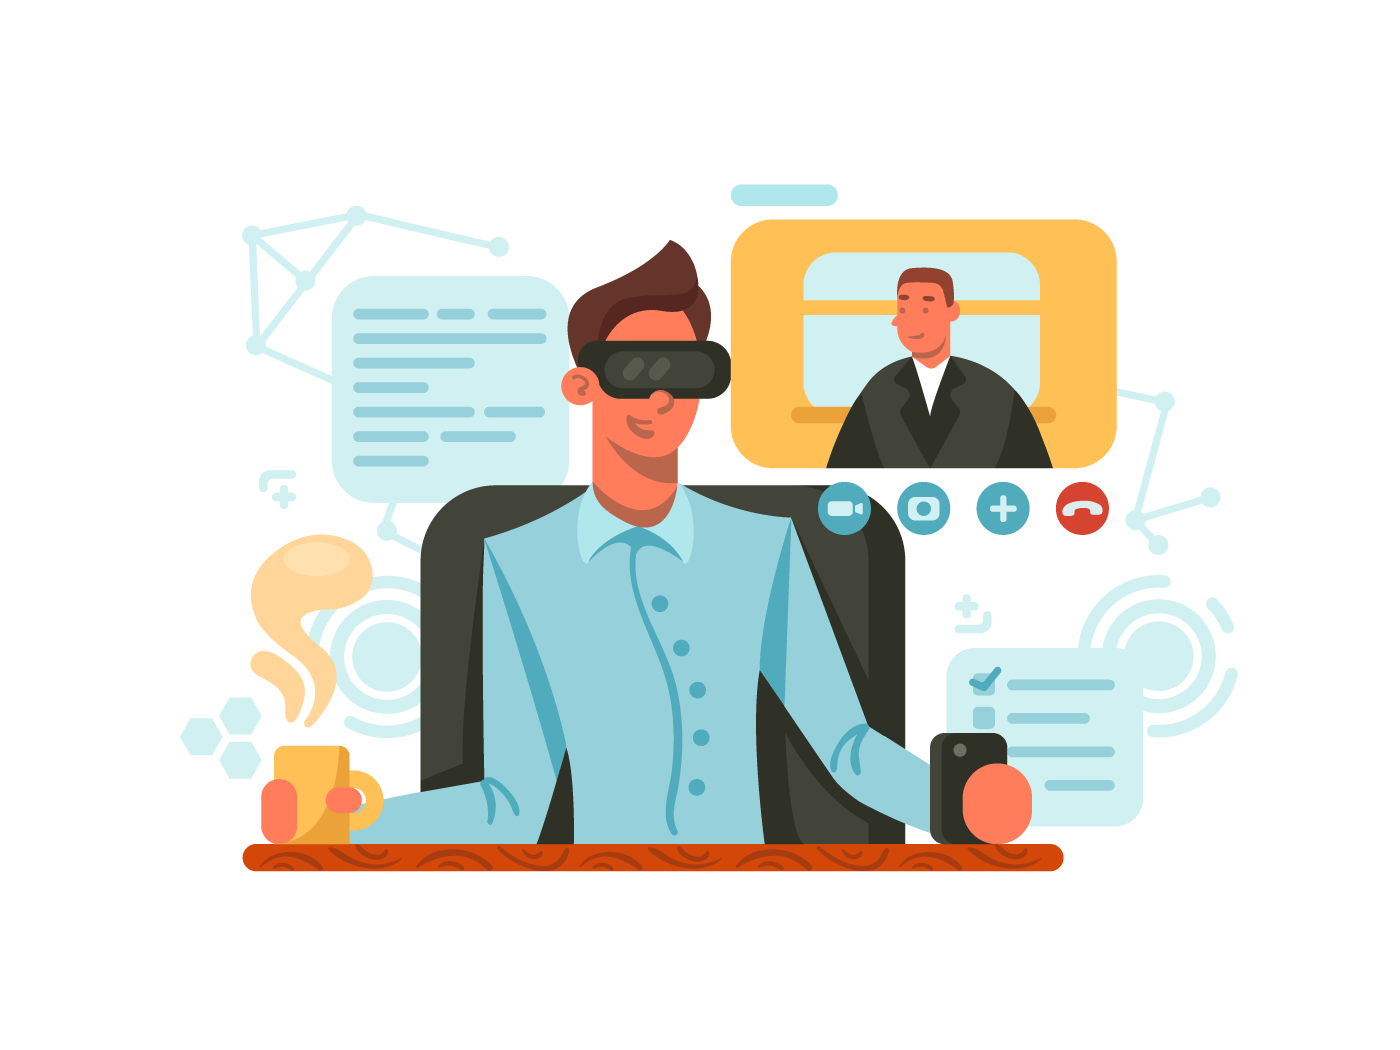 Guy with glasses of virtual reality illustration